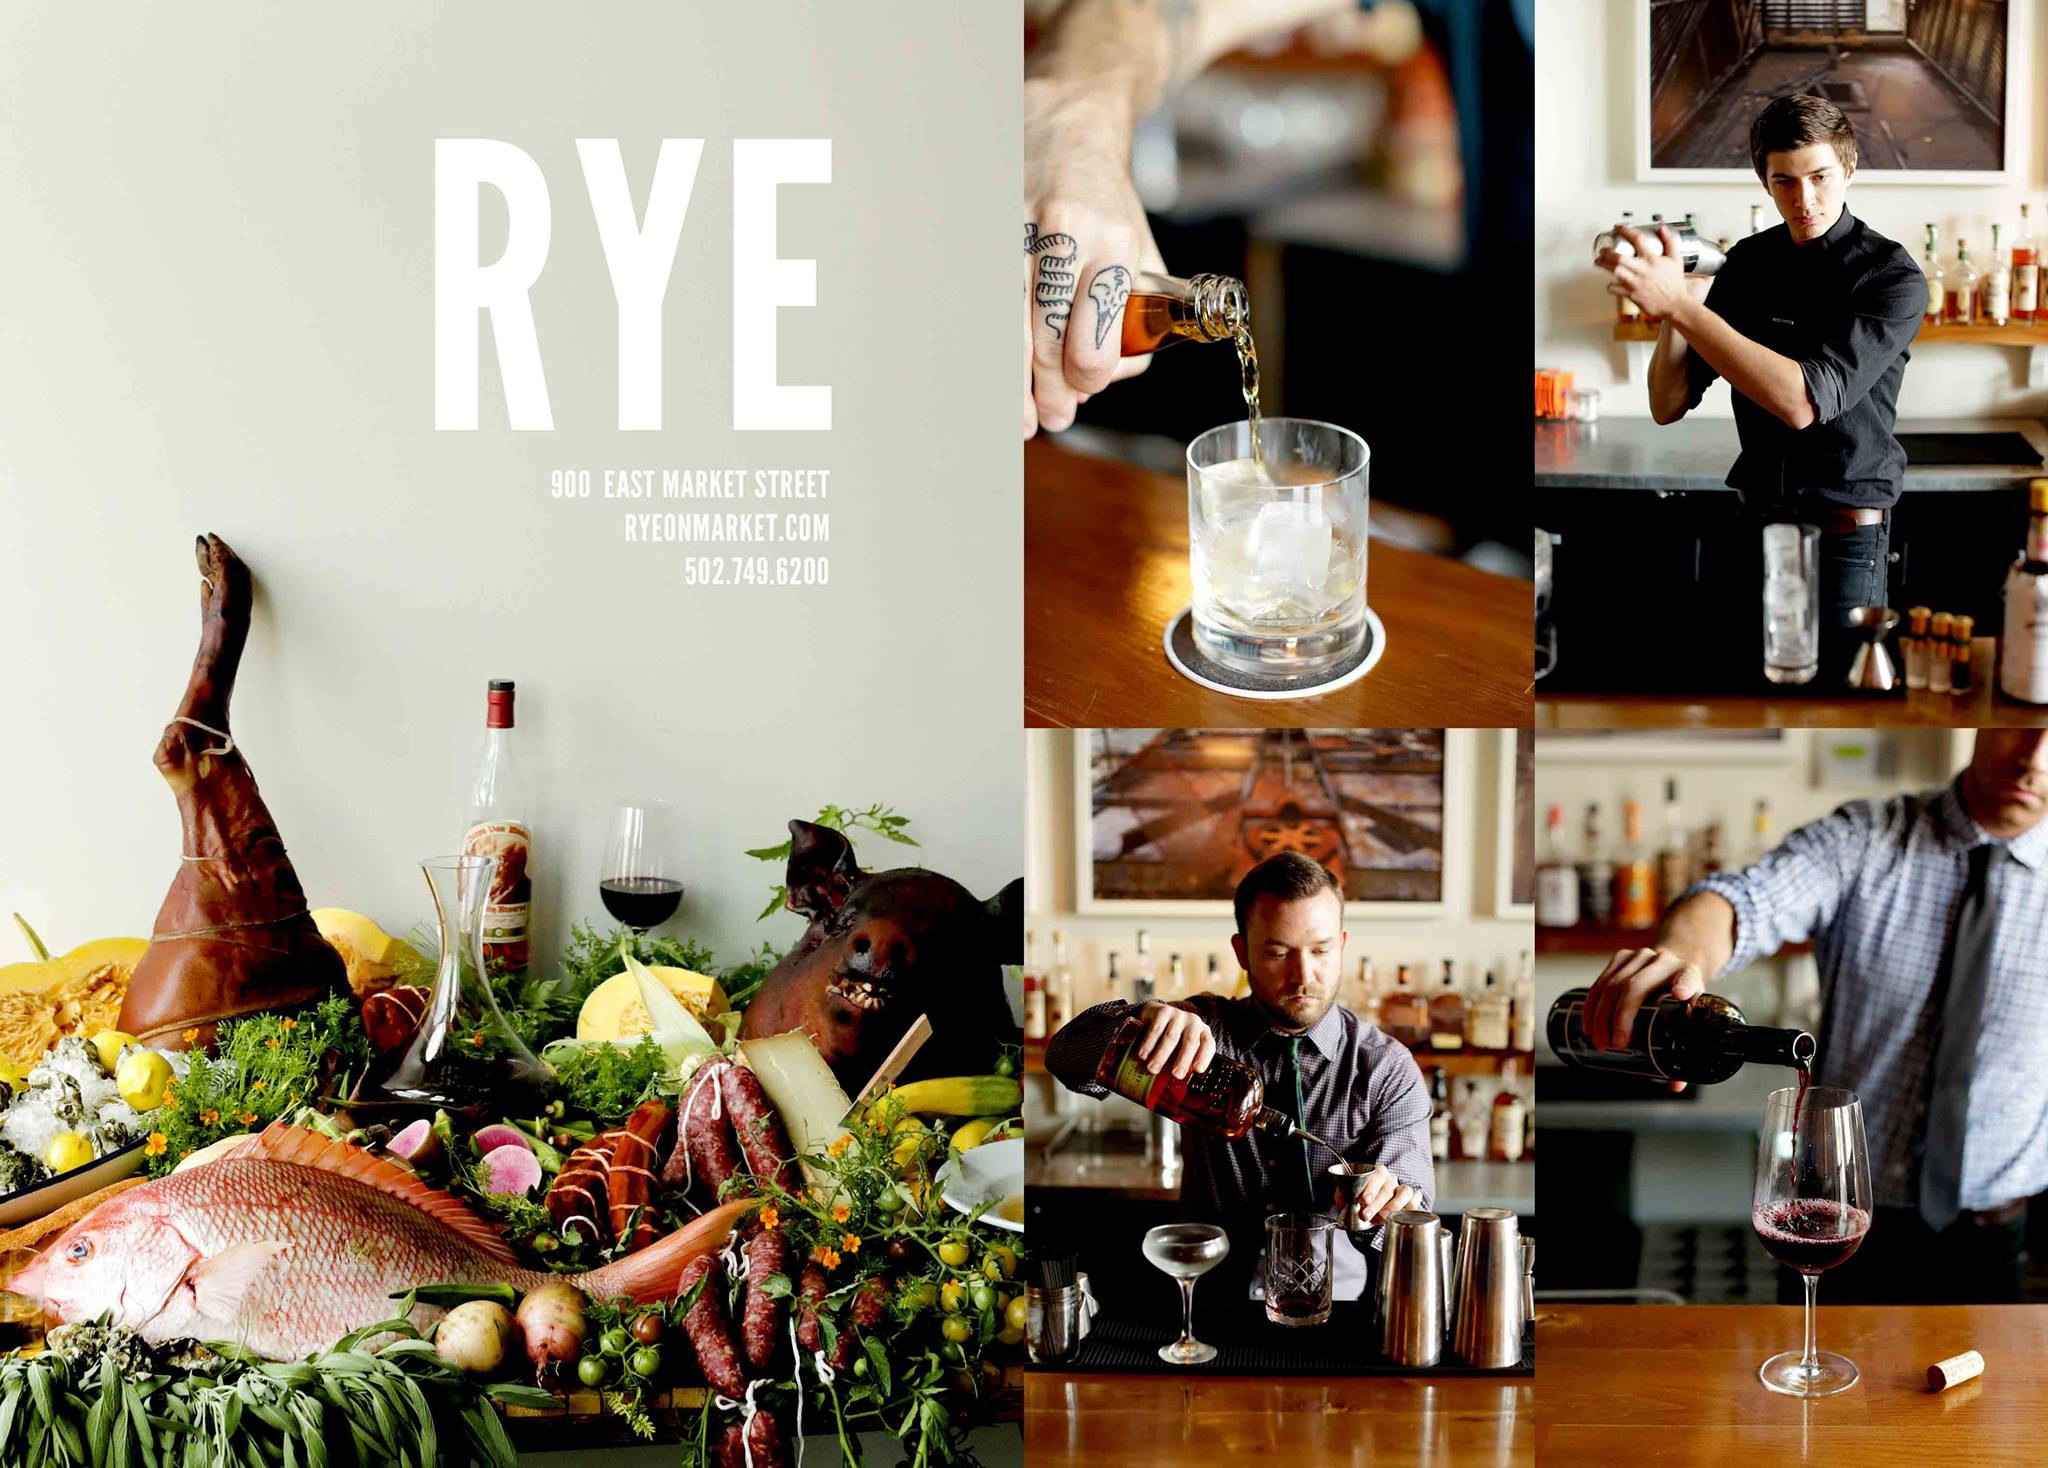 The Kentucky Gent, a men's Southern fashion and life style blogger, introduces Rye as part of Idea Festival's Taste of Innovation line up.